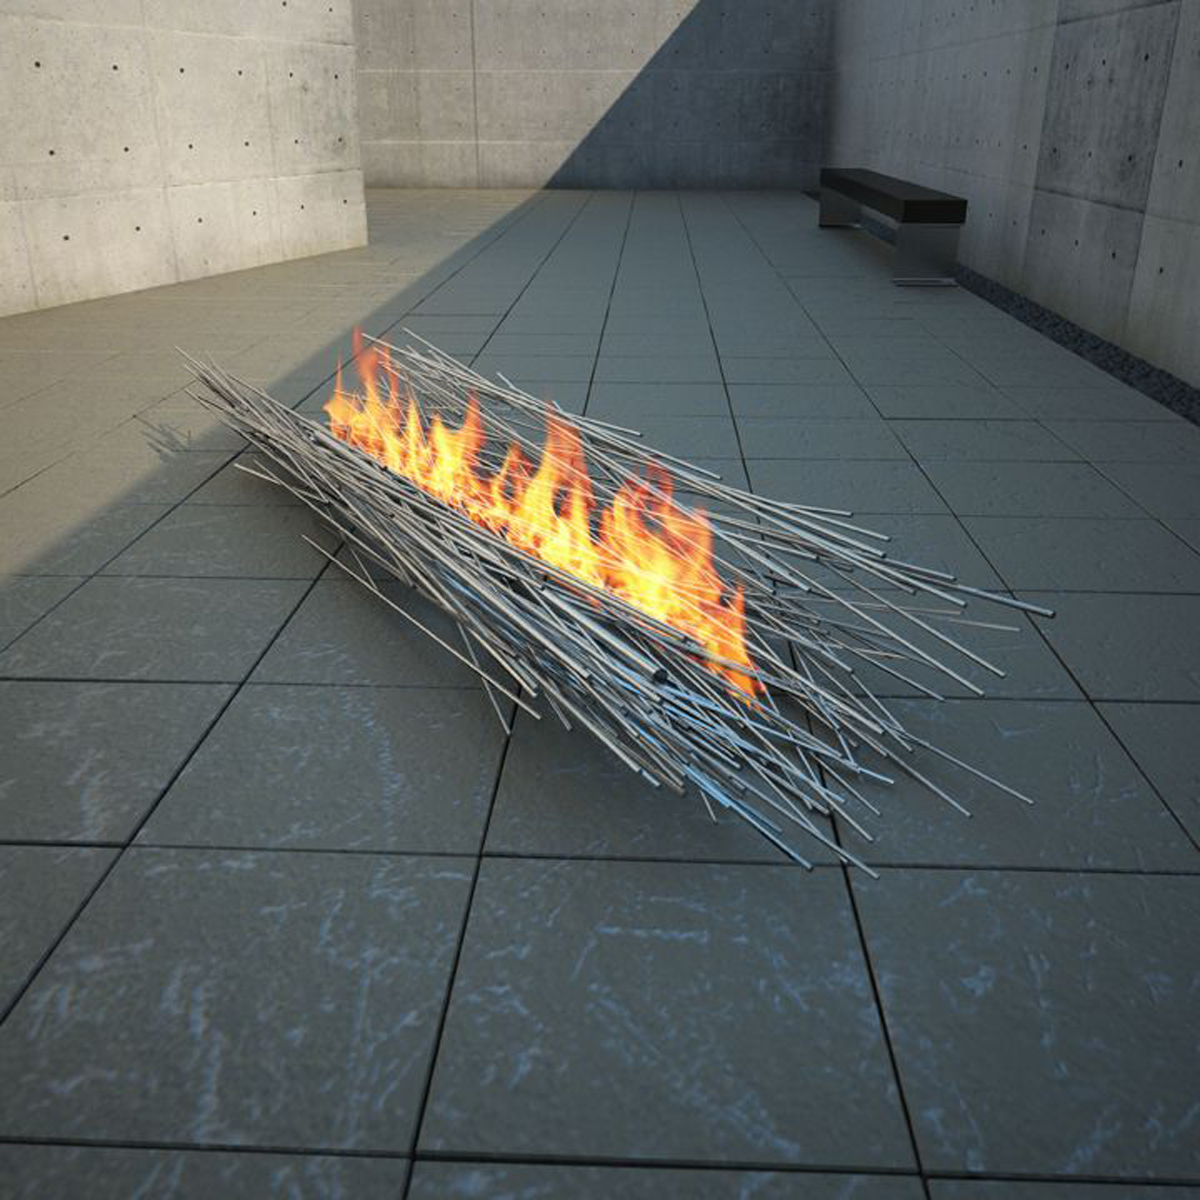 ... Outdoor Fireplace Designs with Portable and Metallic Features